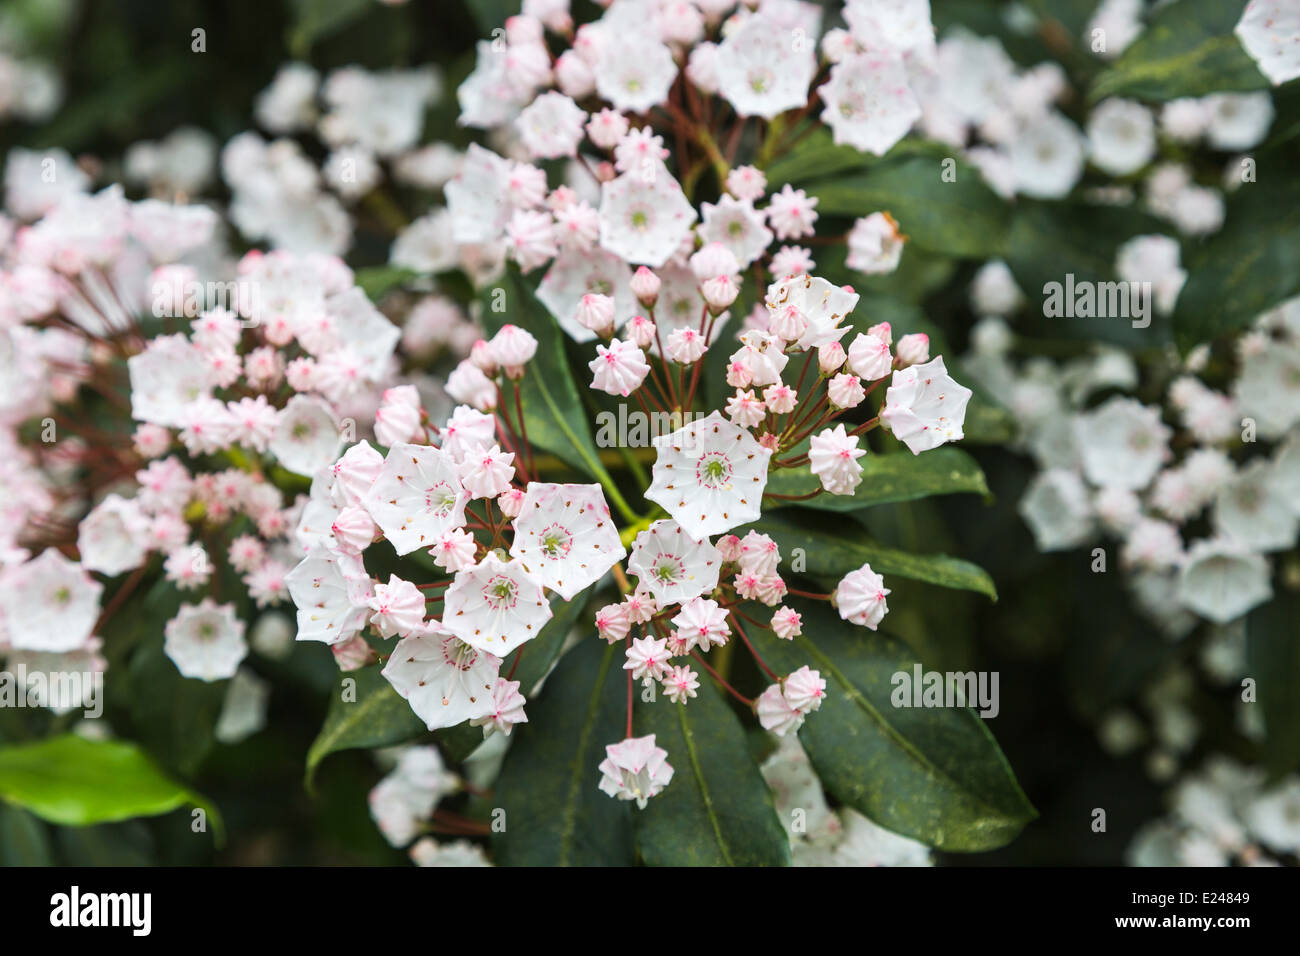 Flowers Of Kalmia Latifolia, Mountainlaurel, Calicobush, Or Spoonwood,  State Flower Of Connecticut And Pennsylvania